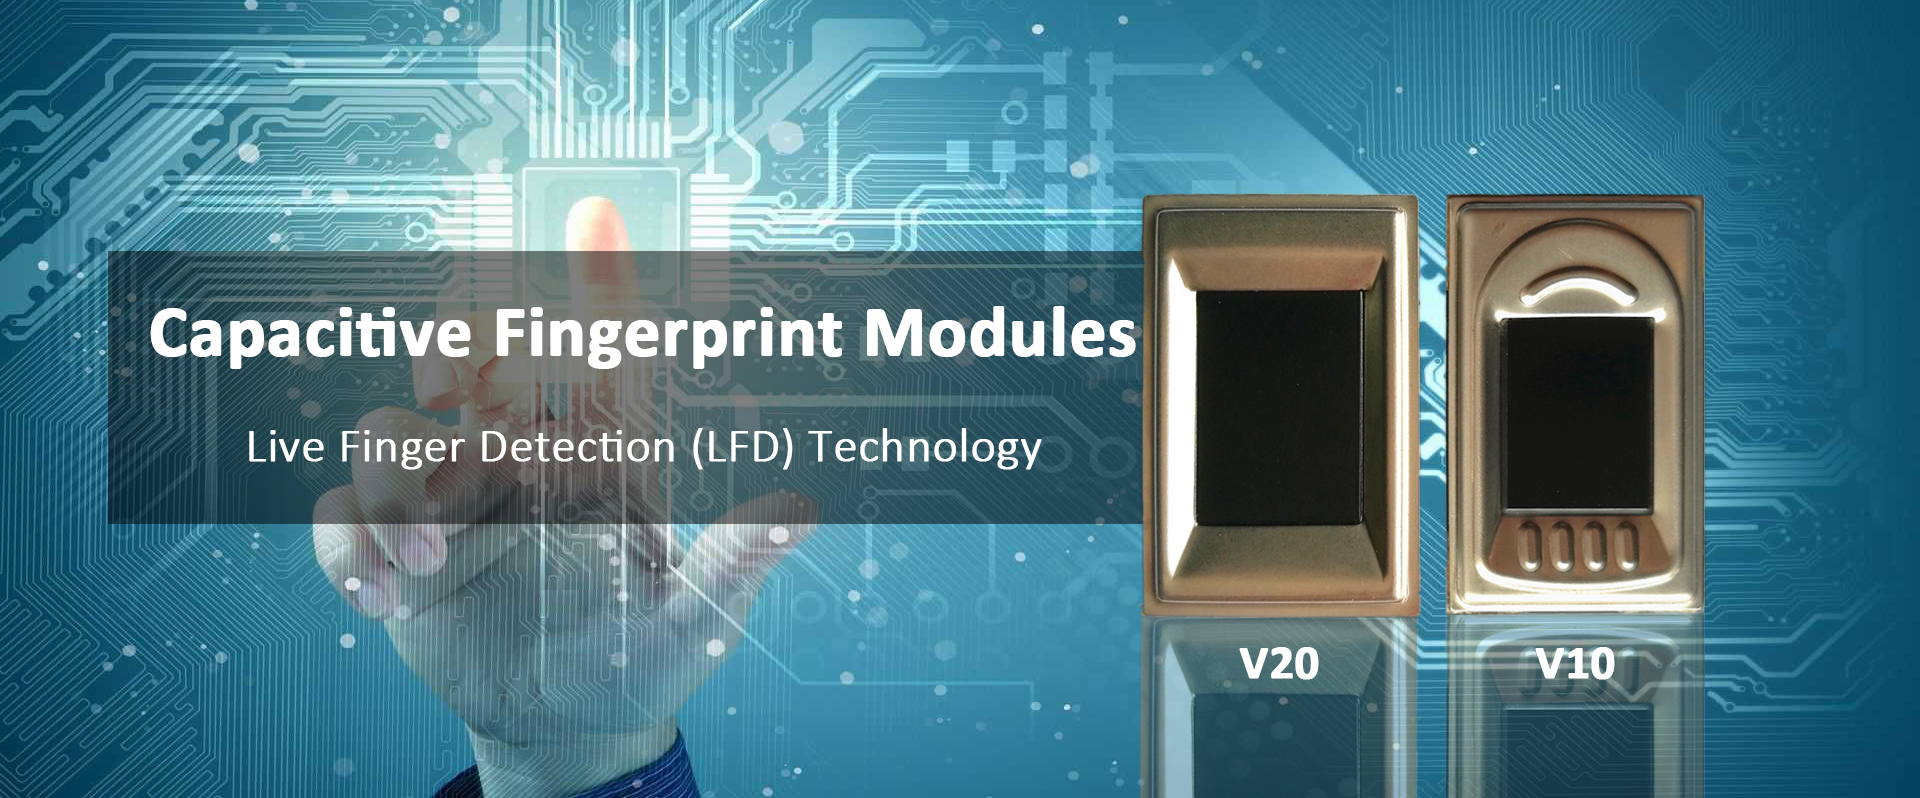 Capacitive Fingerprint Modules